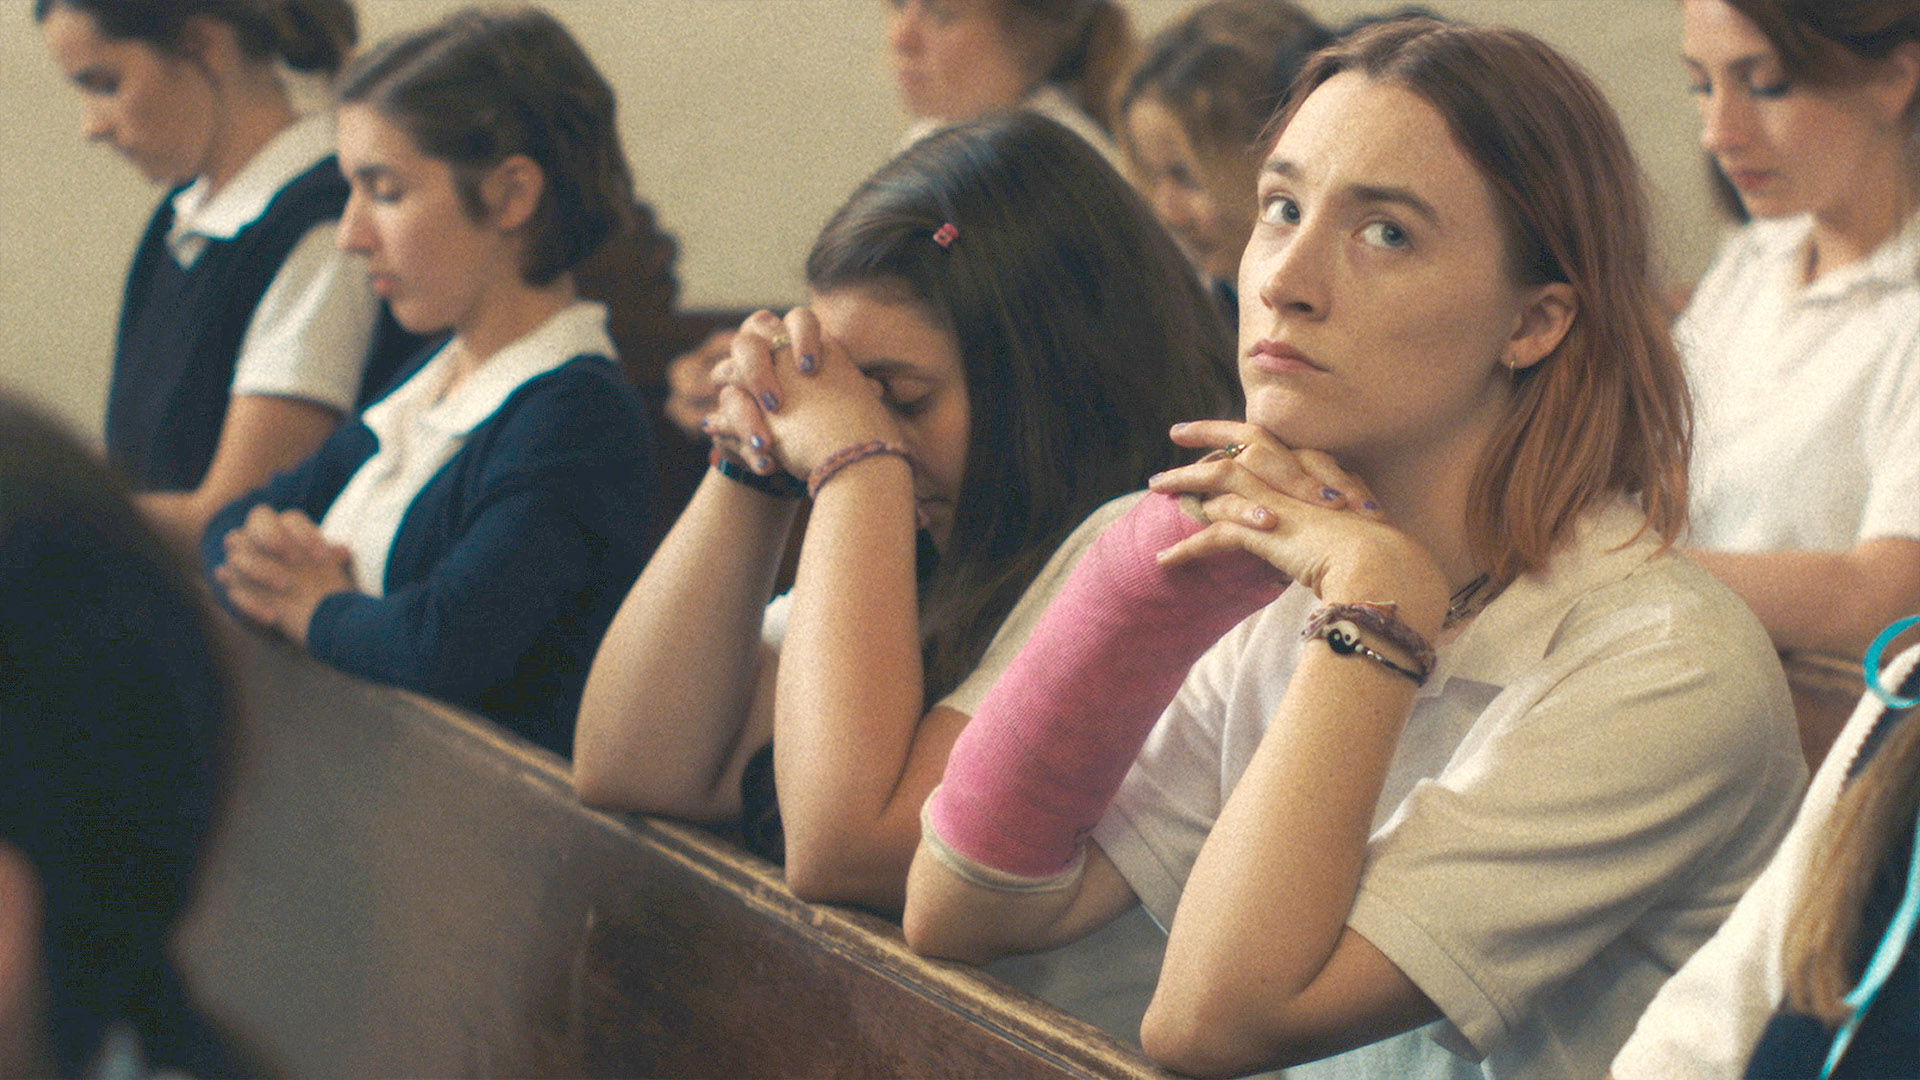 """Considering the academy's bias toward films with cultural ramifications, """"Lady Bird"""" would probably never win Best Picture. Nonetheless, I enjoyed every minute, and every scene, of this coming-of-age comedy/drama. Greta Gerwig is a gem to the film world, with acting performances such as """"Frances Ha"""" and """"Mistress America"""". Her directorial work is off to a fittingly excellent start."""